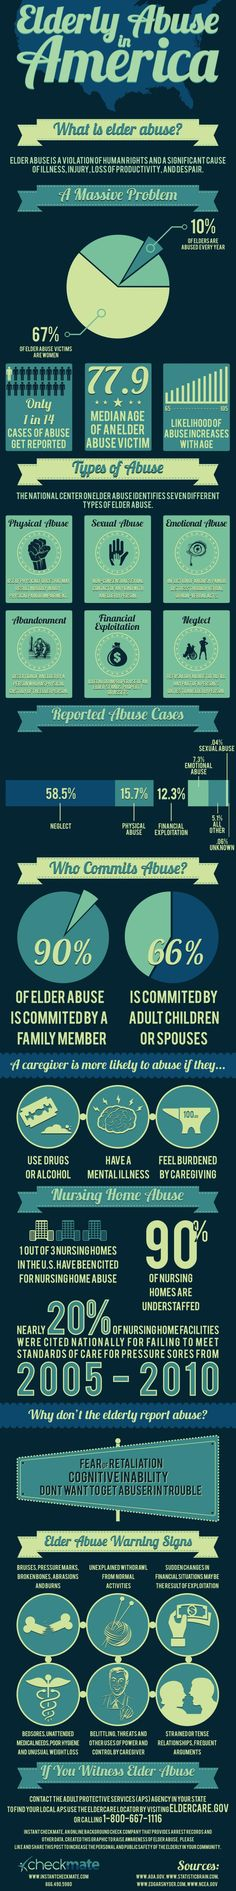 Elderly Abuse In America Infographic